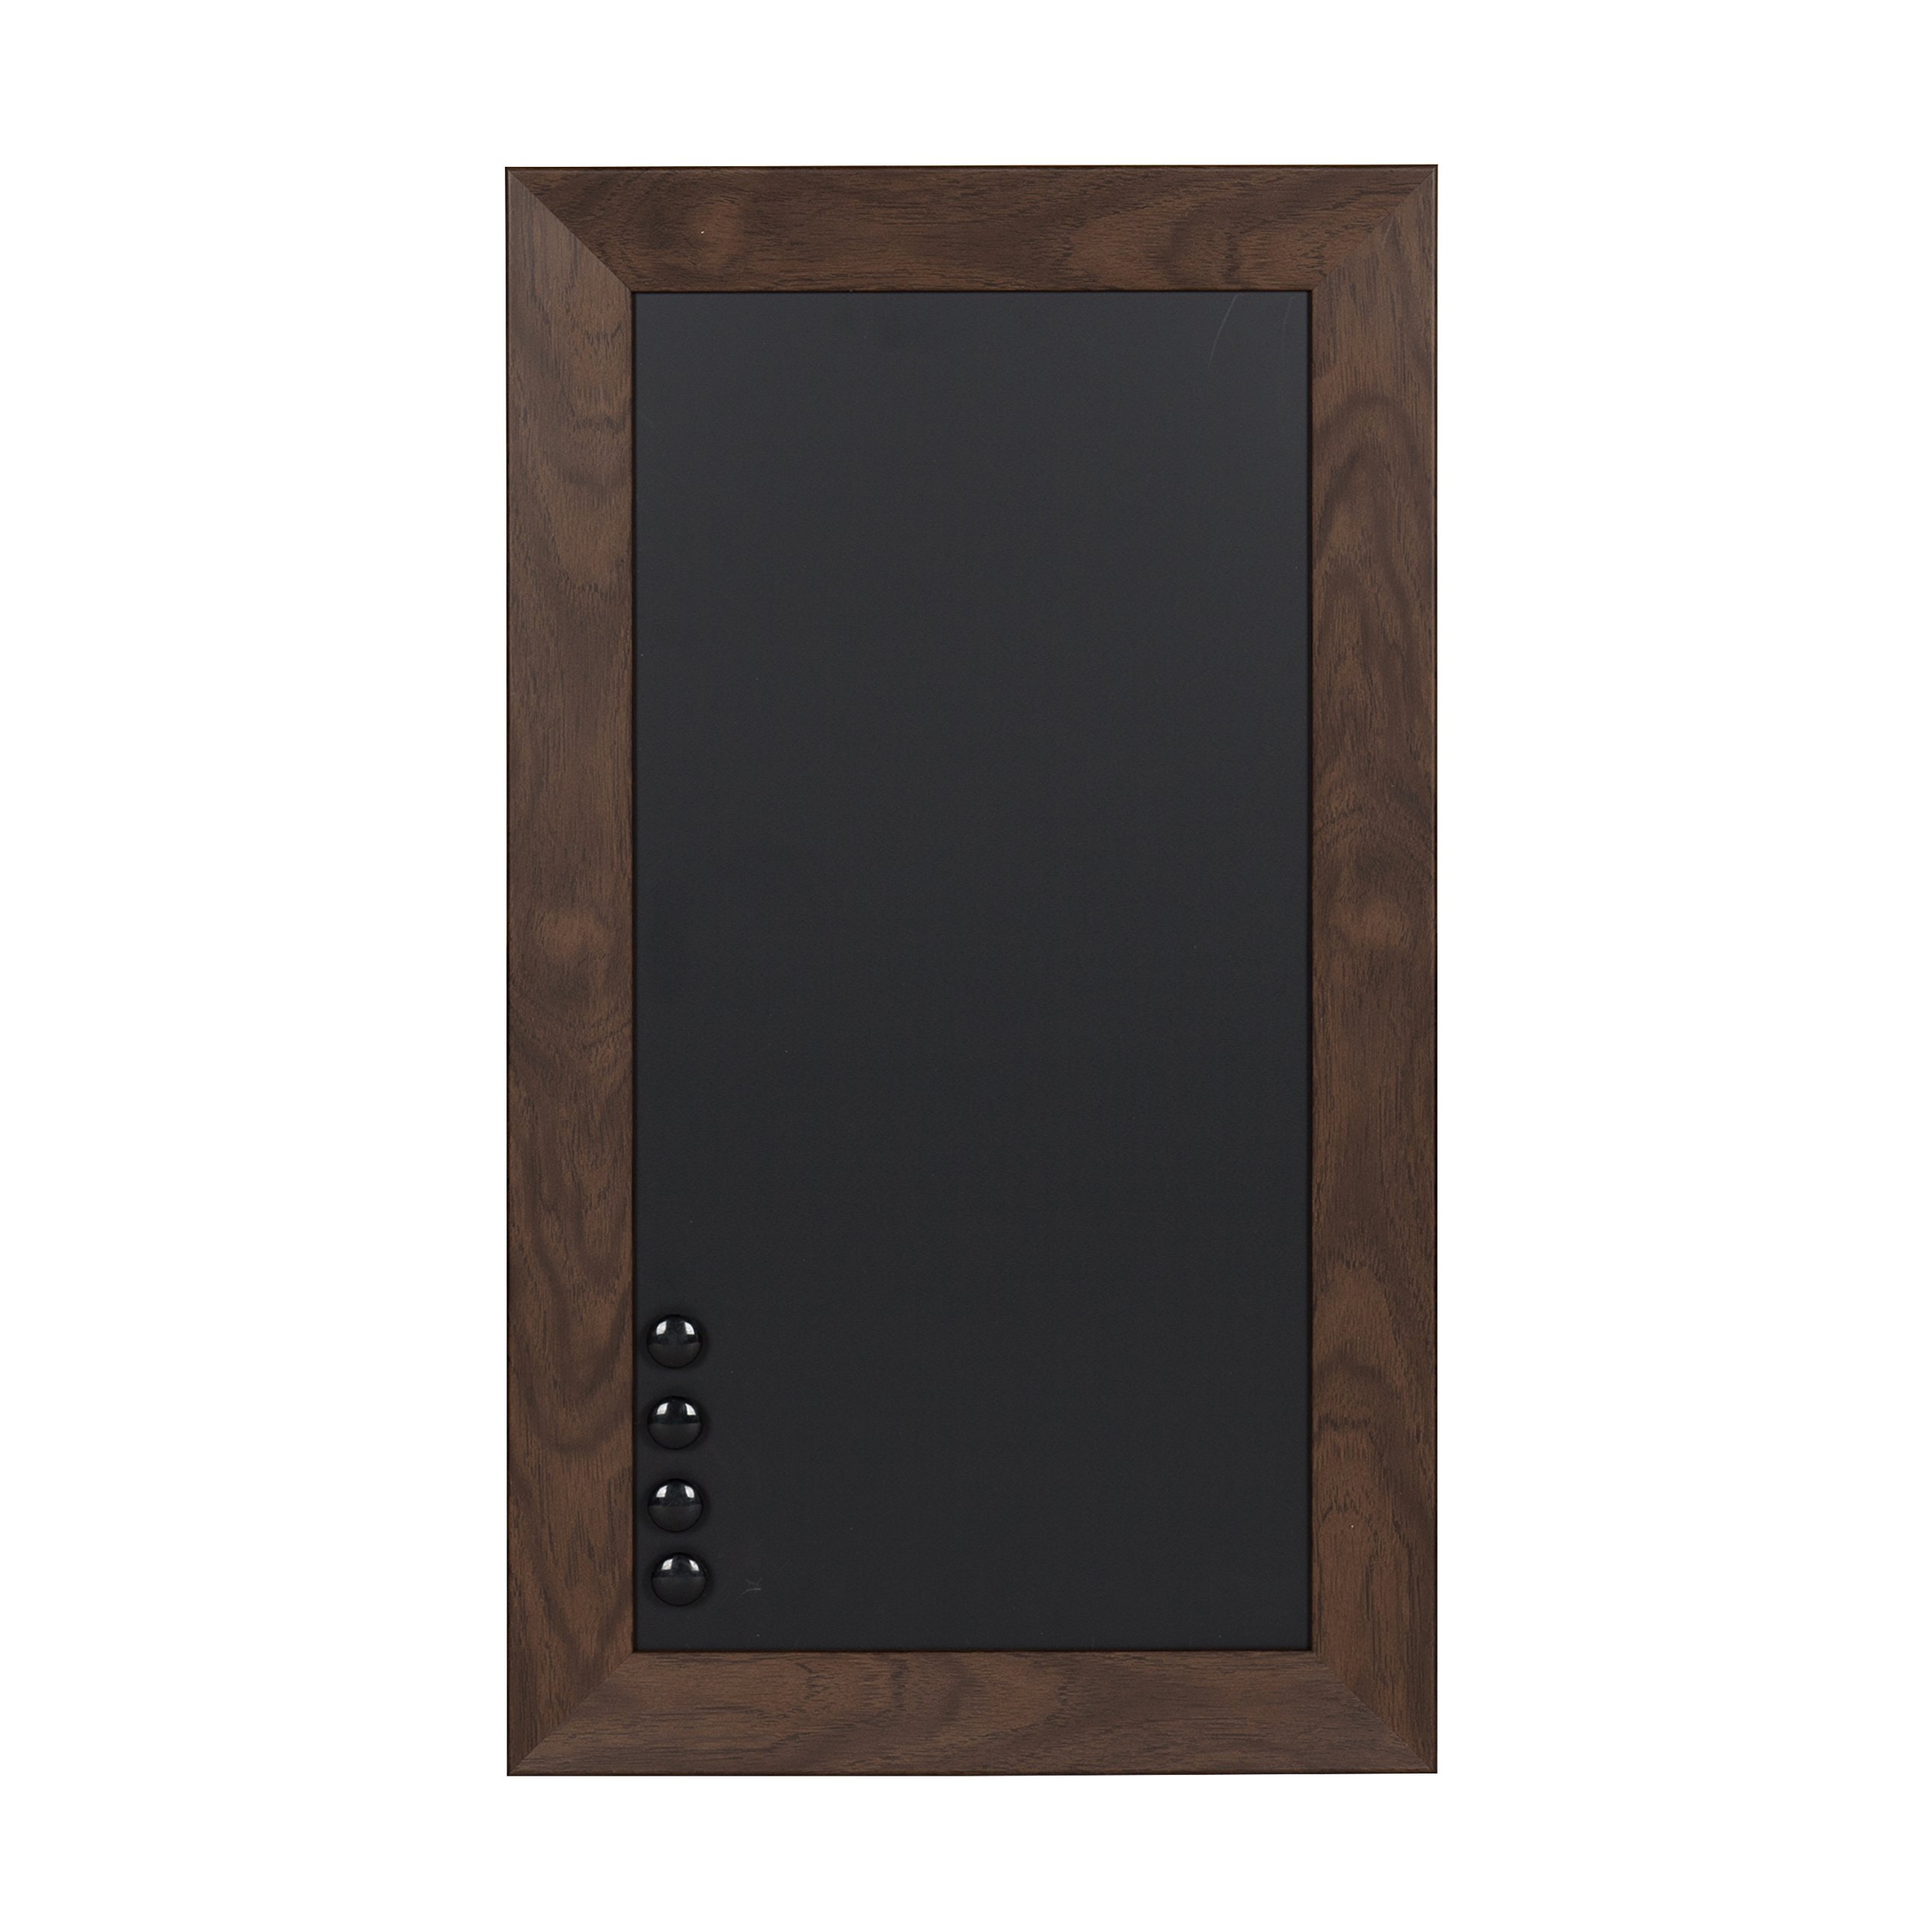 DesignOvation Beatrice Framed Magnetic Chalkboard, 13x23, Walnut Brown by DesignOvation